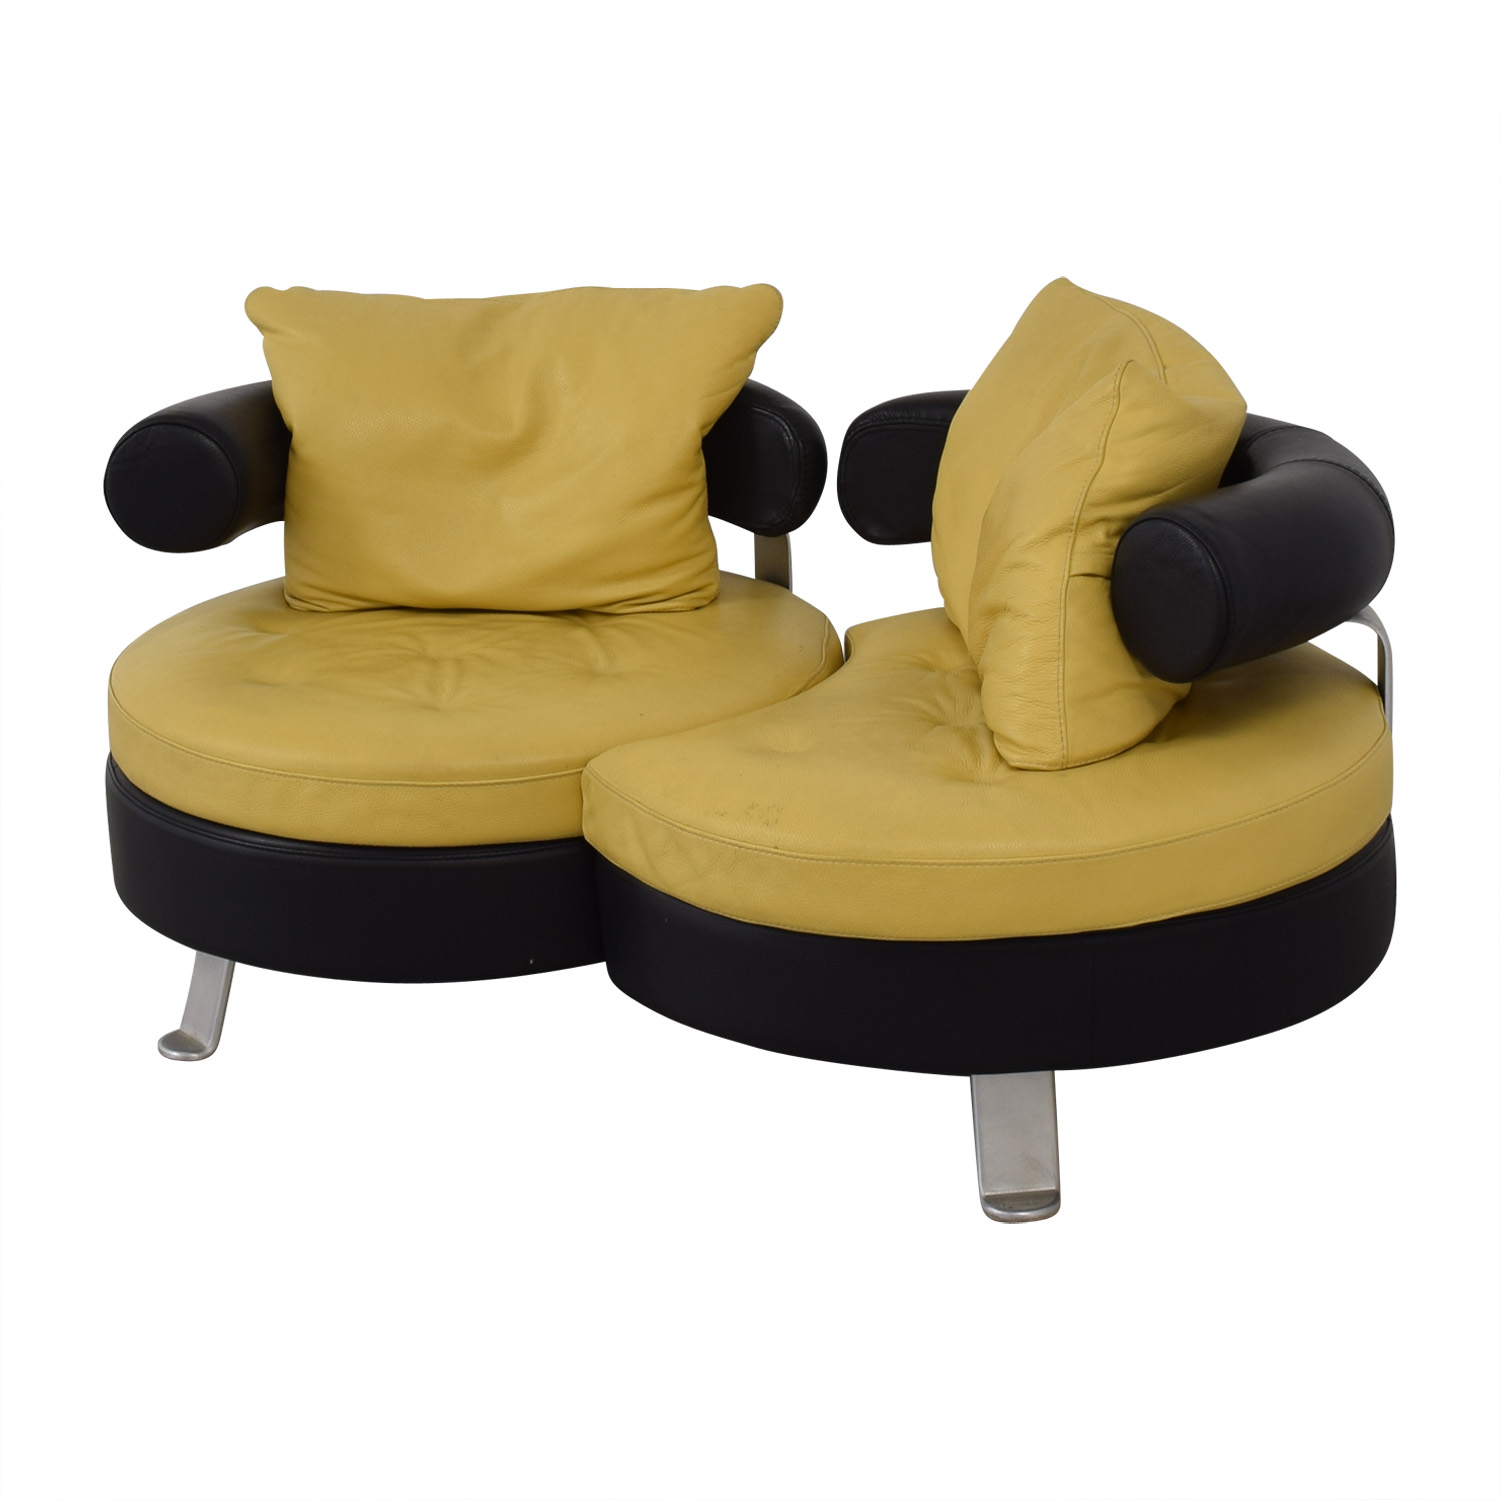 Formenti Formenti Swivel Loveseat second hand